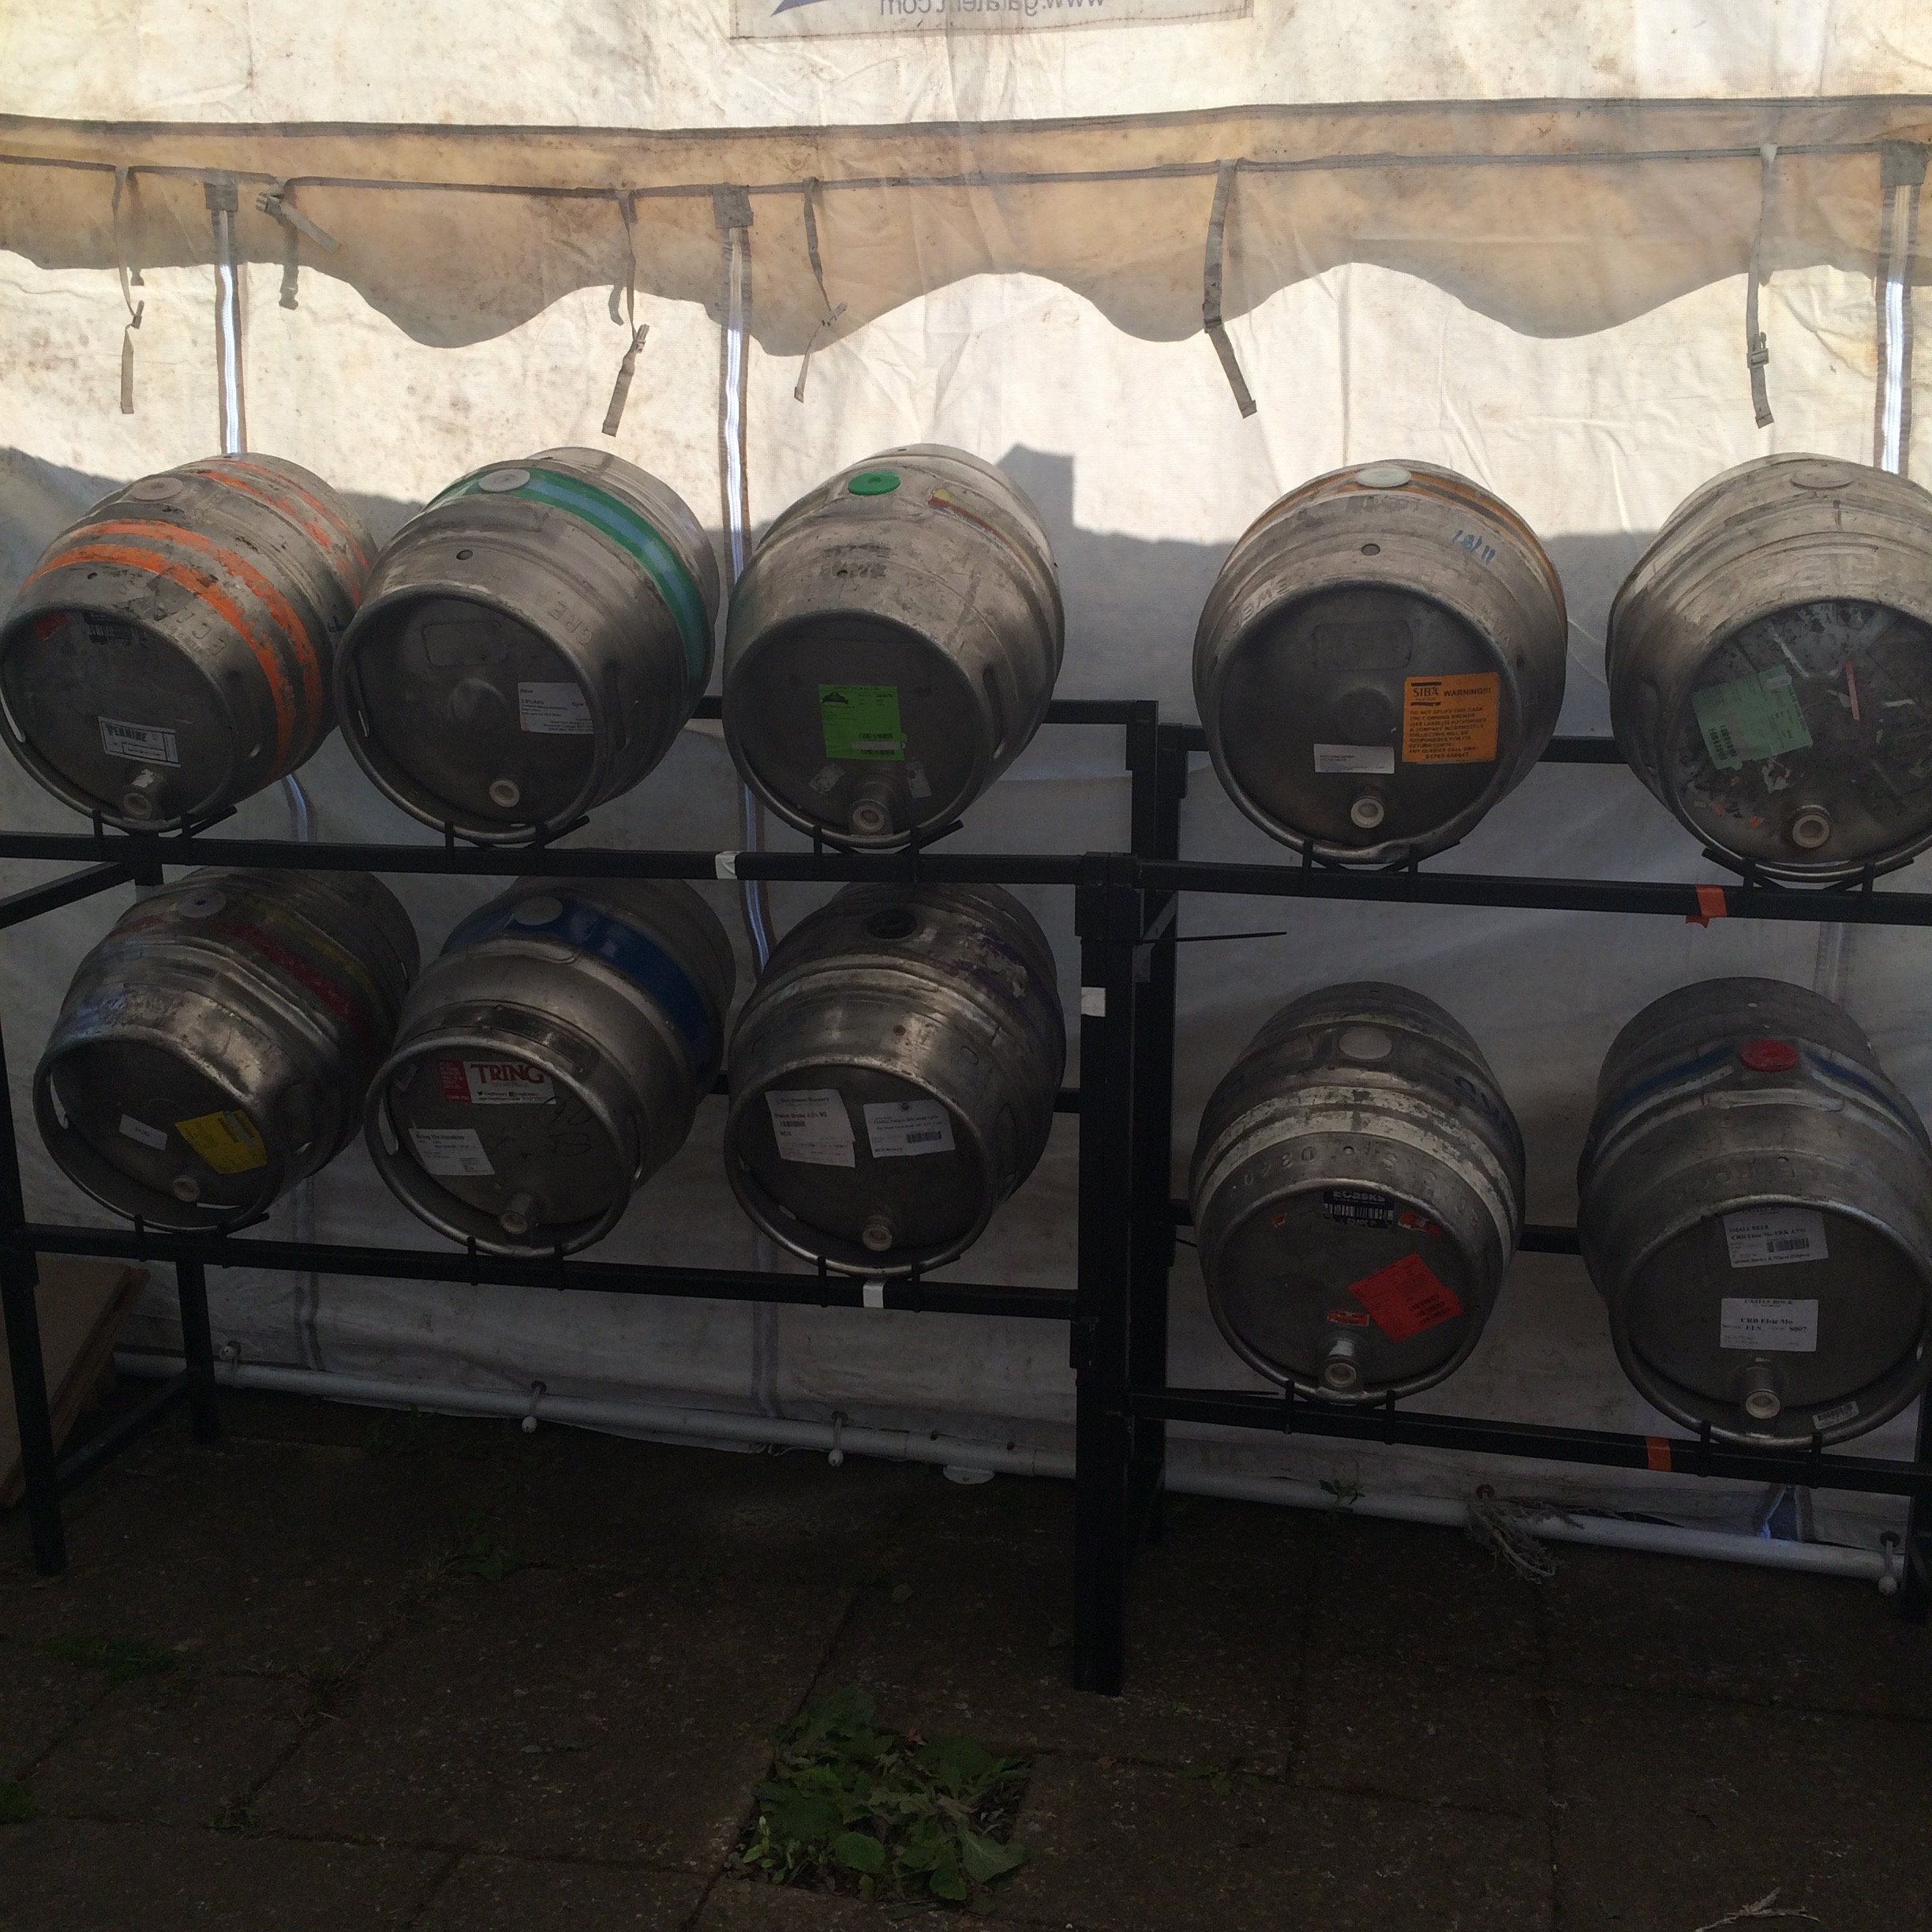 The King and Queen - Country and Beer Festival Sat.Apr 30th - Mon. May 2nd